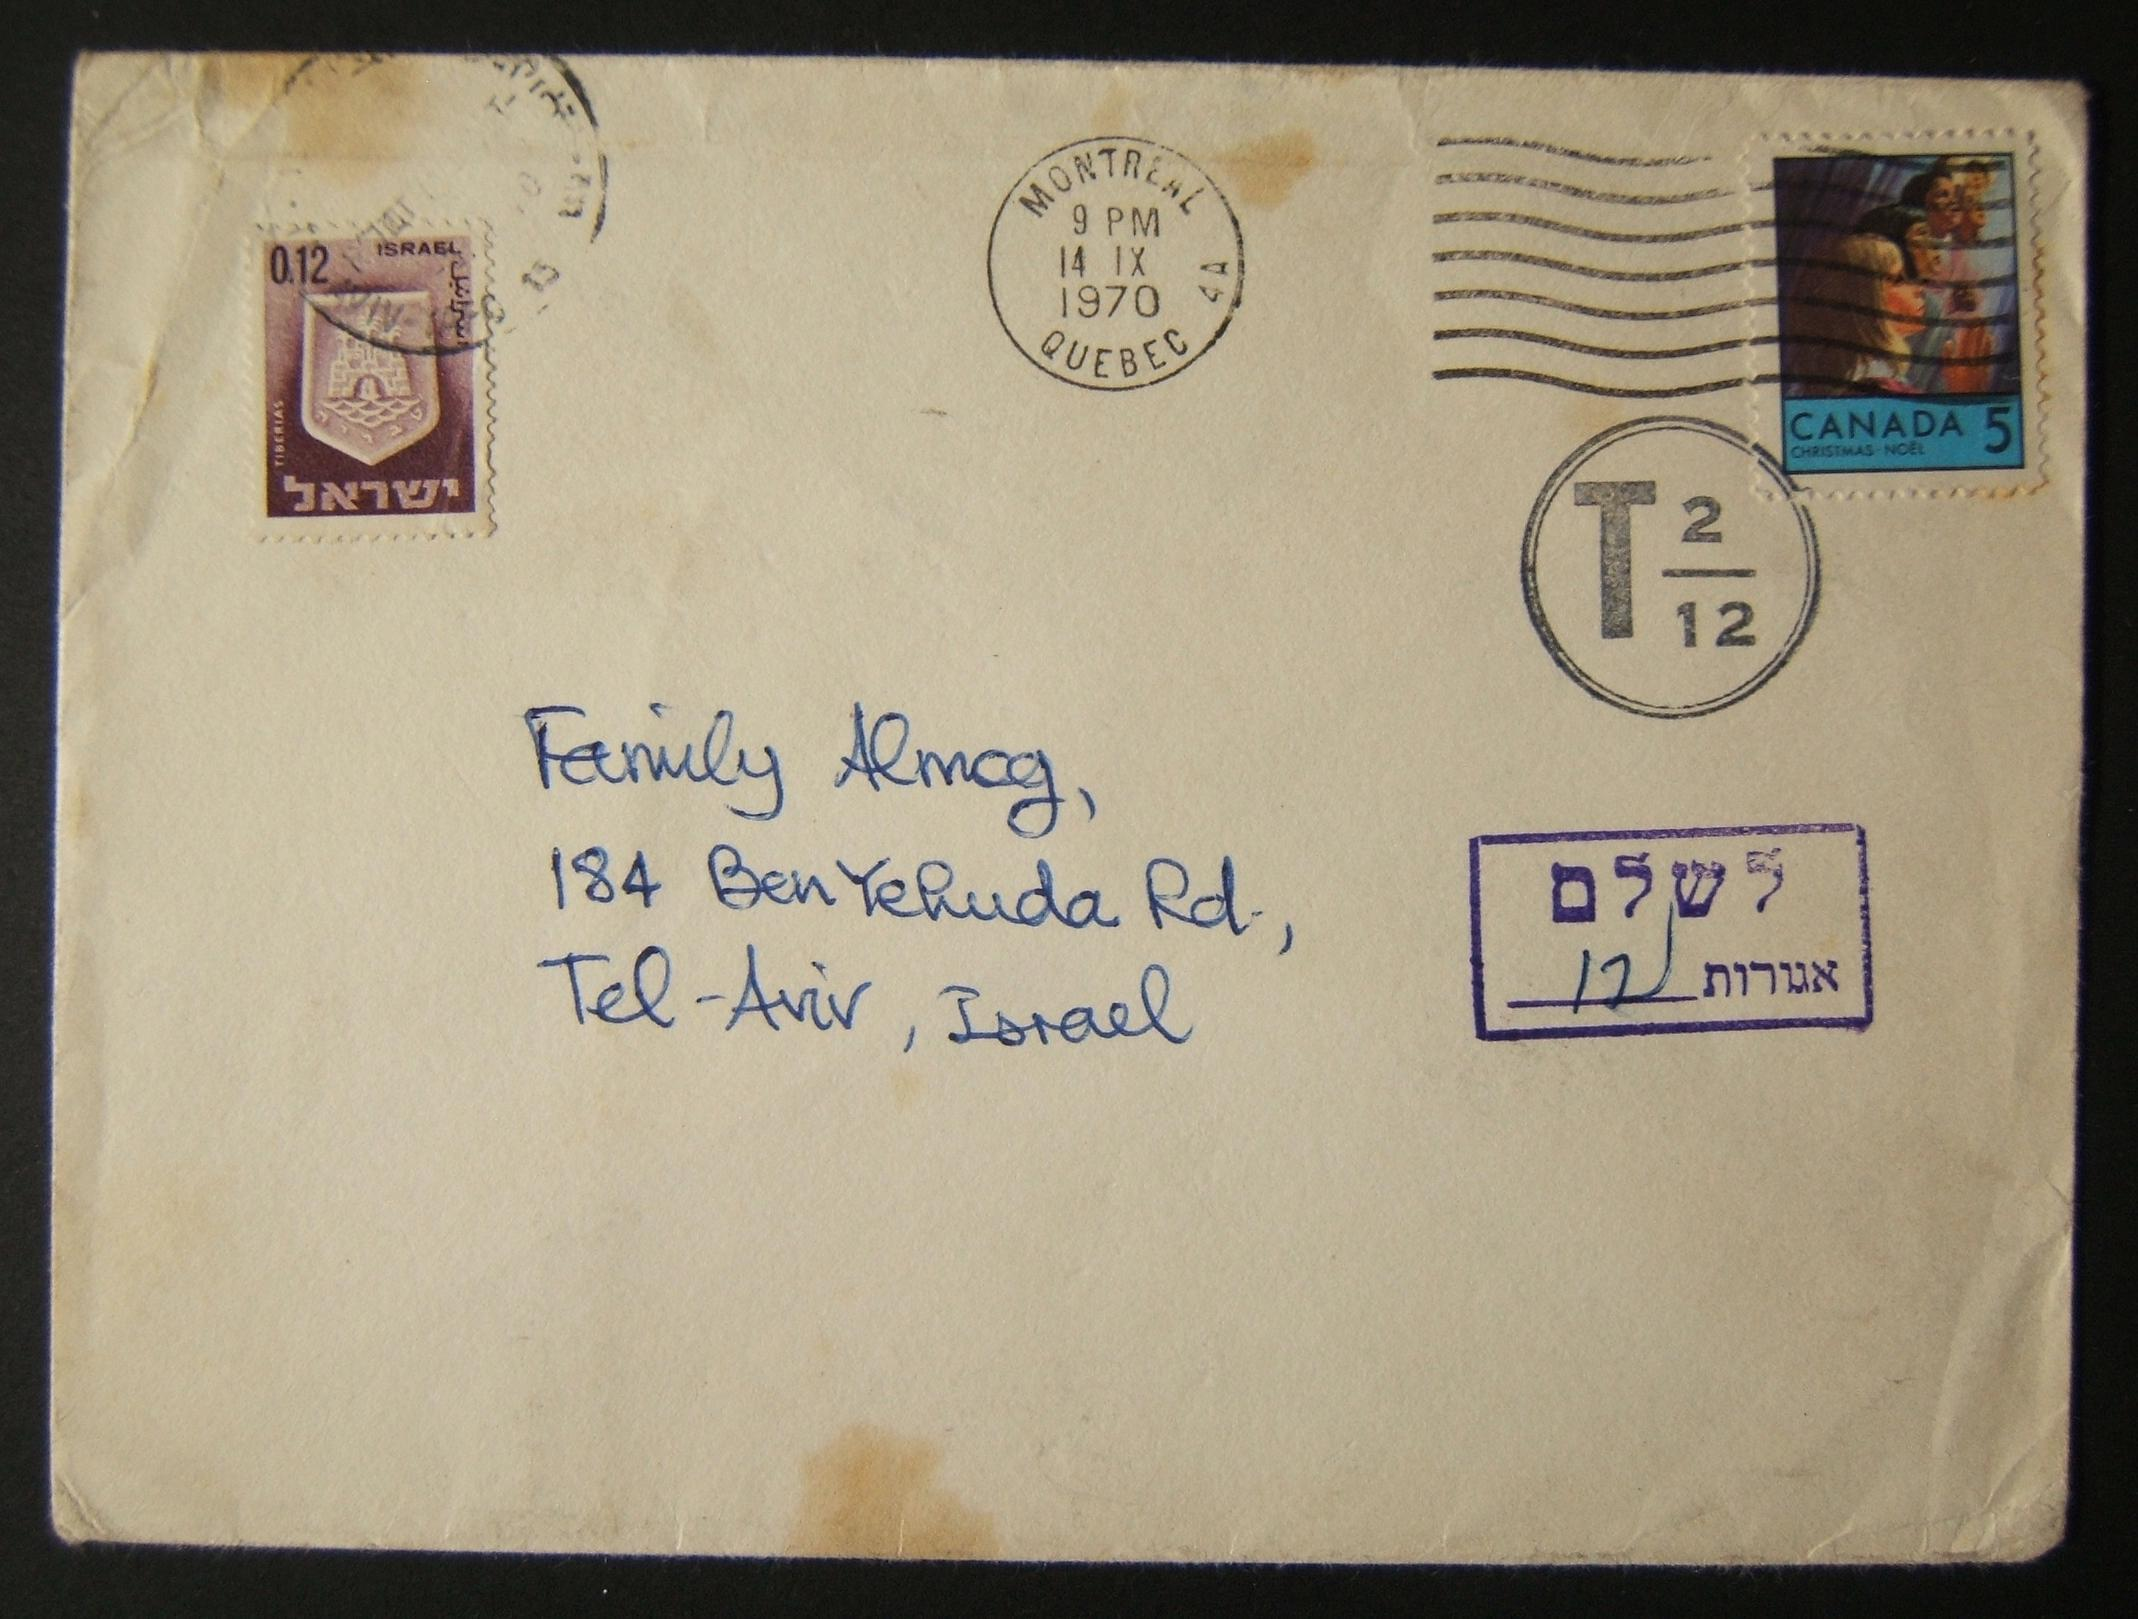 1970 incoming Candian taxed mail: 14 IX 1970 surface mailed cover ex MONTREAL to TLV underfranked at $0.05 and taxed 0.12L in Israel, paid 3-11-70 using 1965/67 1st Town Emblems Ba